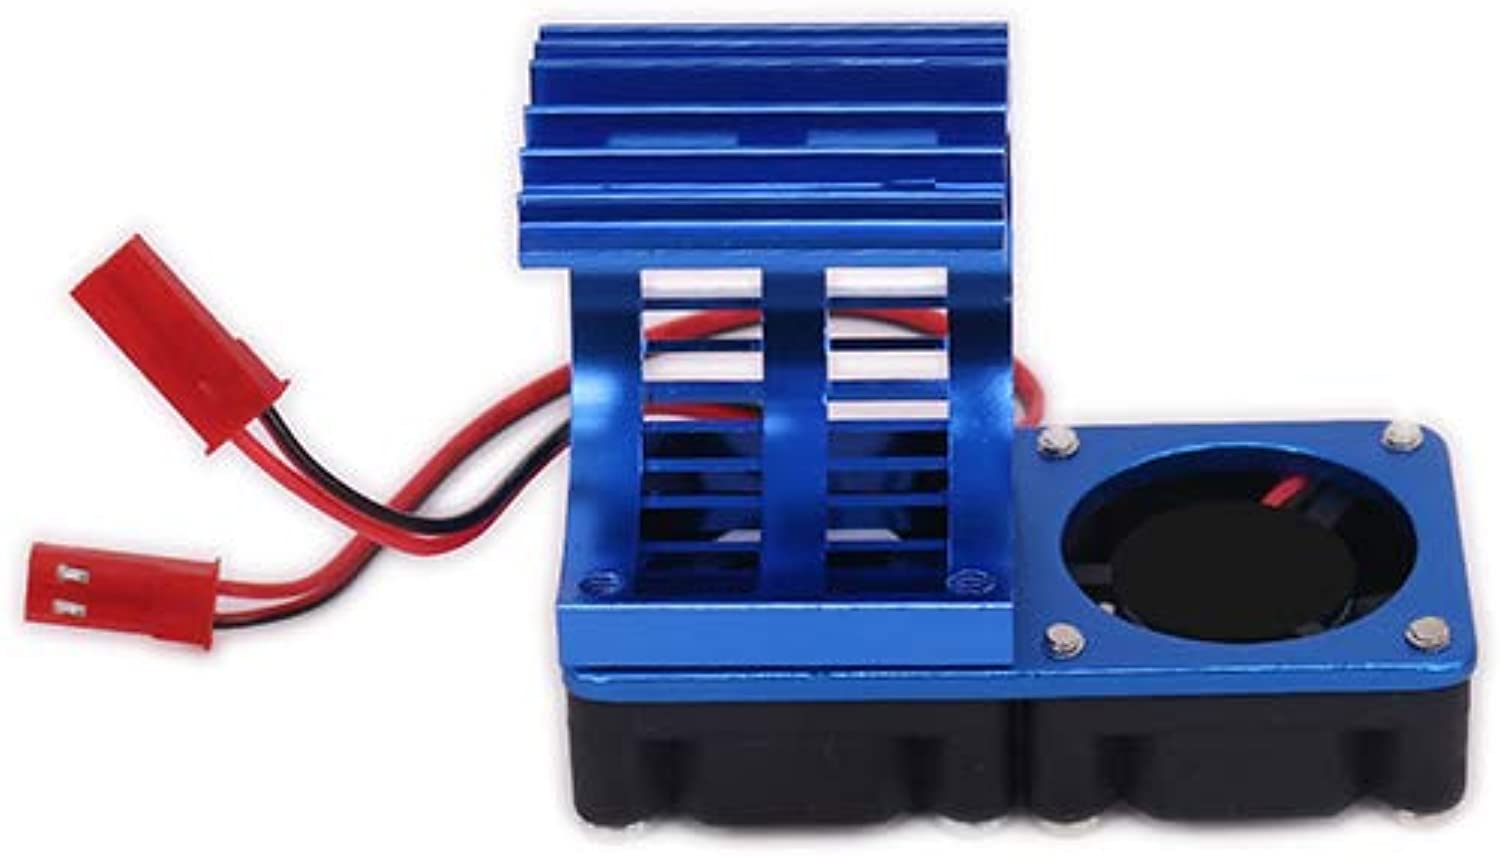 540 545 550 Motor Heat Sink Heatsink with Twin Fan Cooling Side Vent JST for 1 10 RC Car   Boat HSP HPI Wltoys Himoto Tamiya   Dark bluee